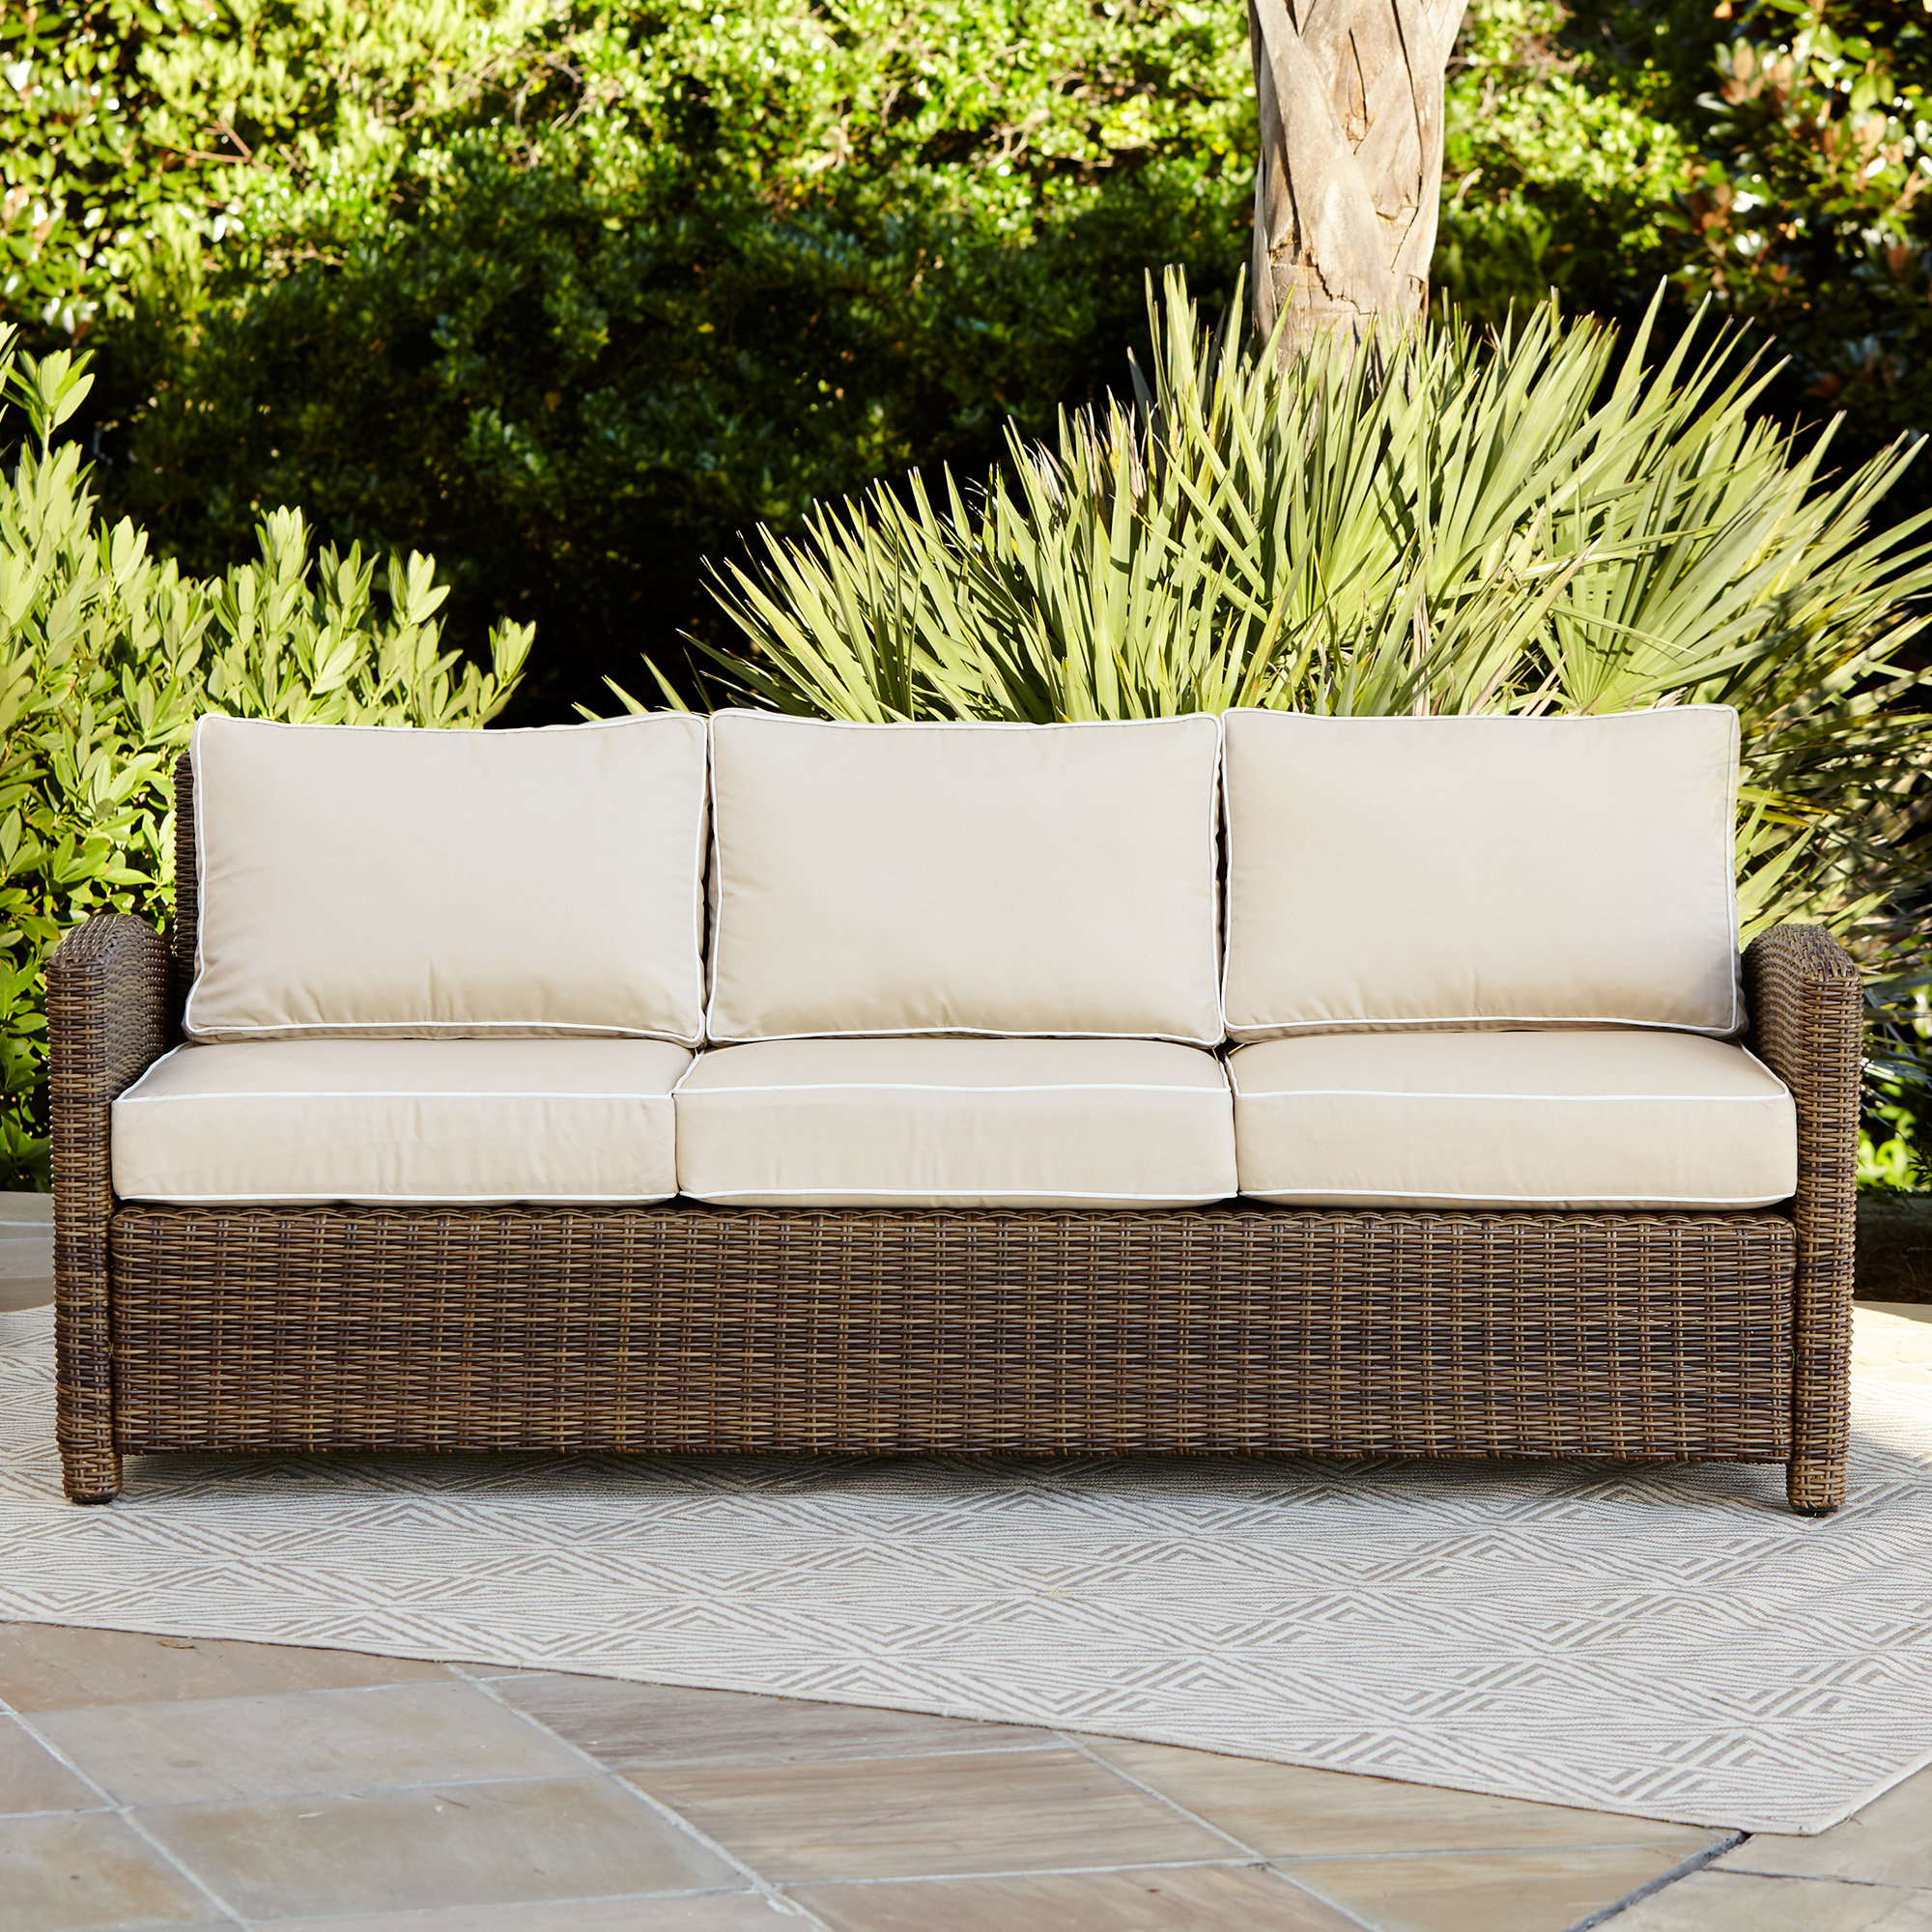 Fashionable Stockwell Patio Sofas With Cushions For Lawson Patio Sofa With Cushions (View 9 of 20)